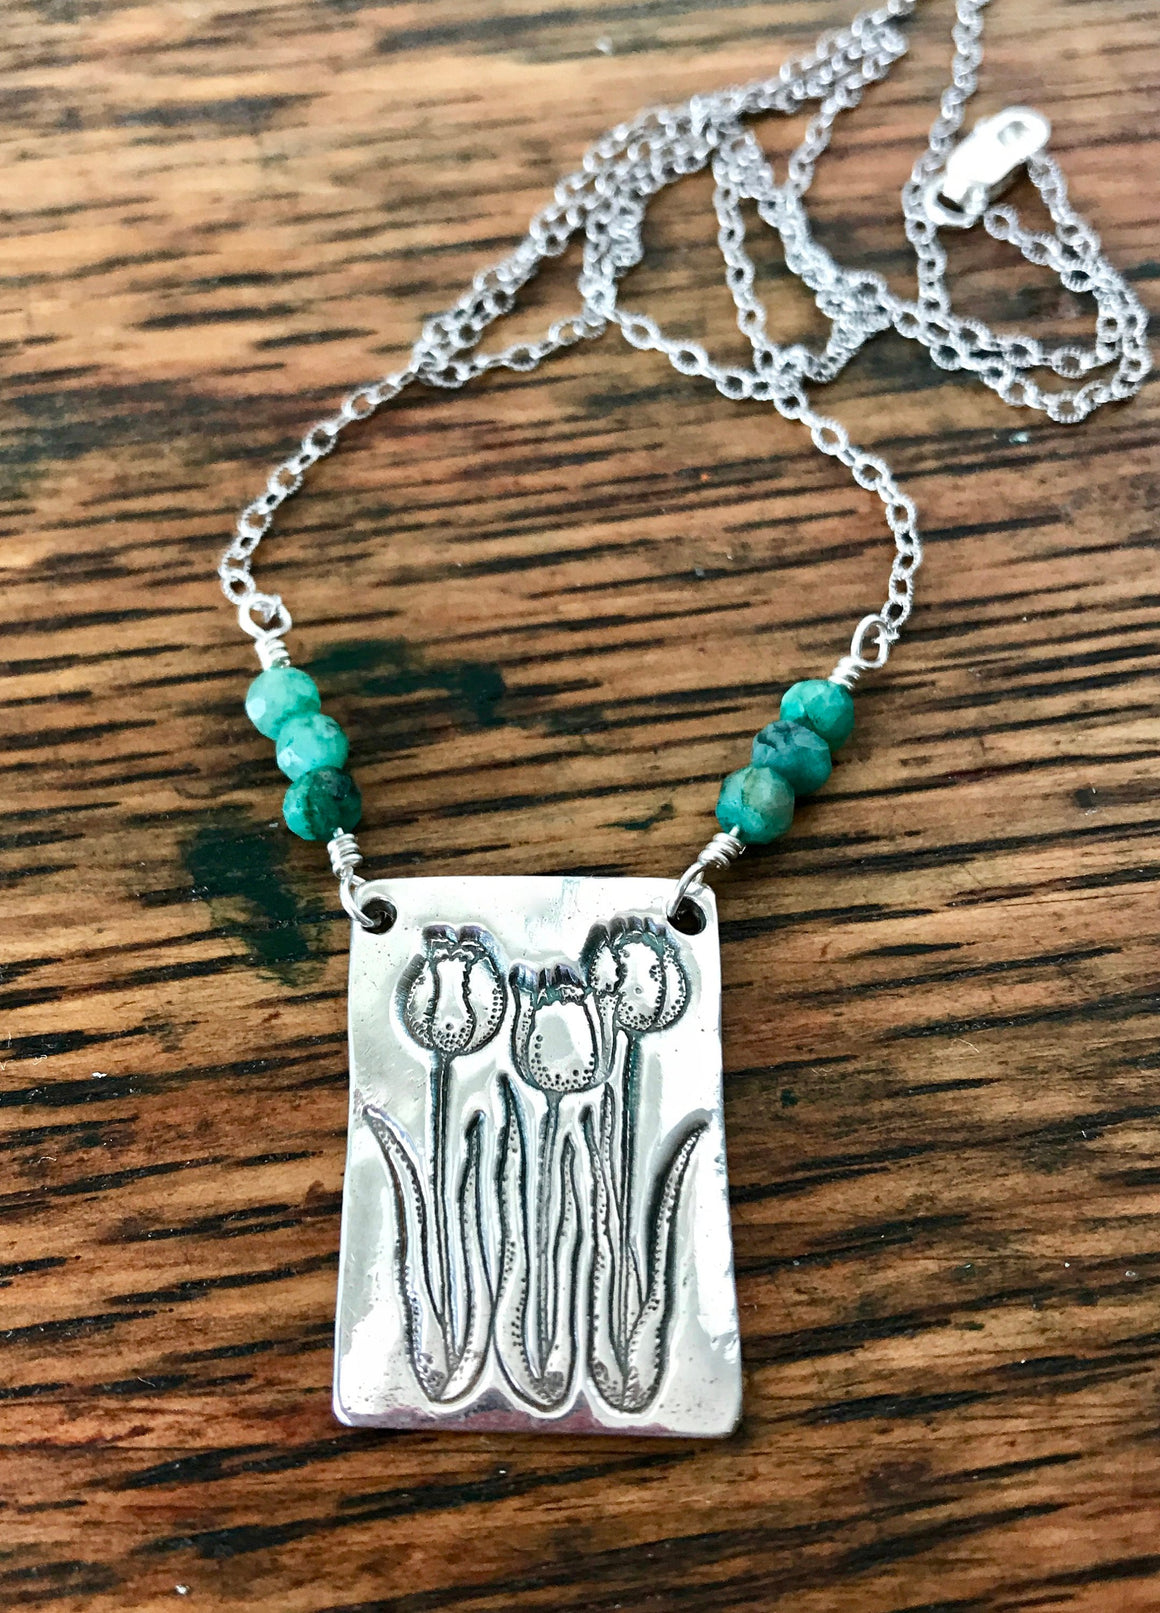 Silver Embossed Tulip Pendant Necklace with Green Emerald Gemstone Beads on Textured Sterling Silver Chain